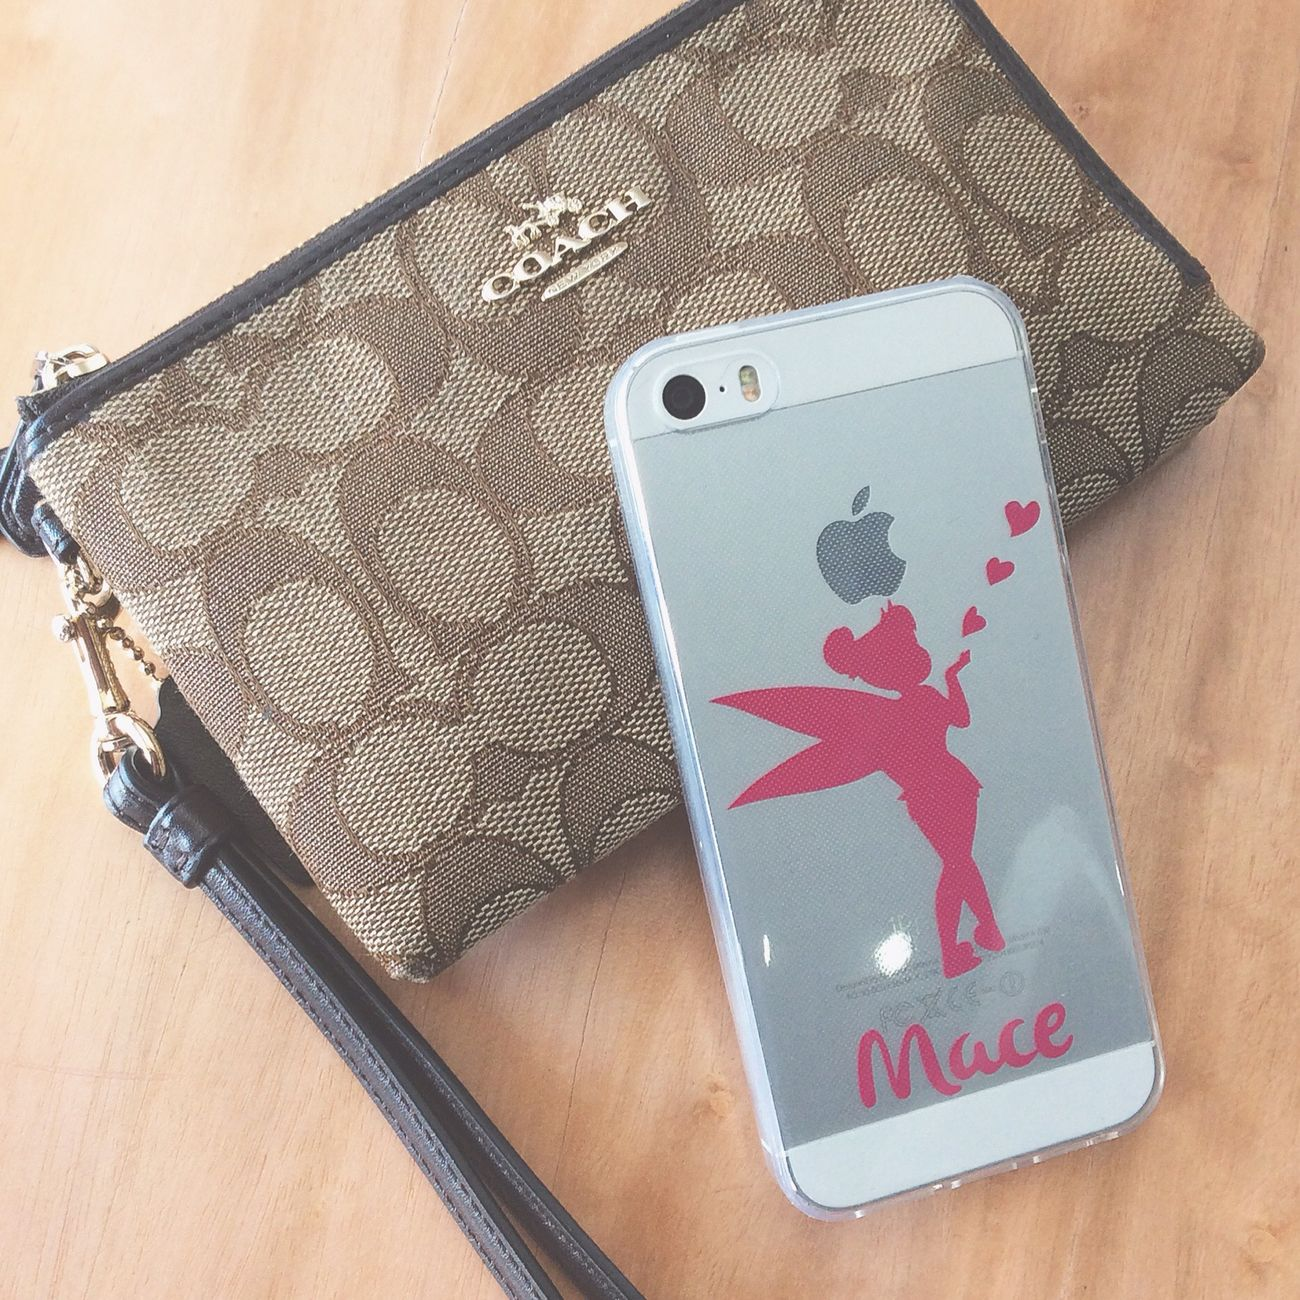 Little stuffs. 💕 IPhoneography IPhone Iphone5s Decals Phonedecals Names Tinkerbell Cute Coach Pouch Coachbag